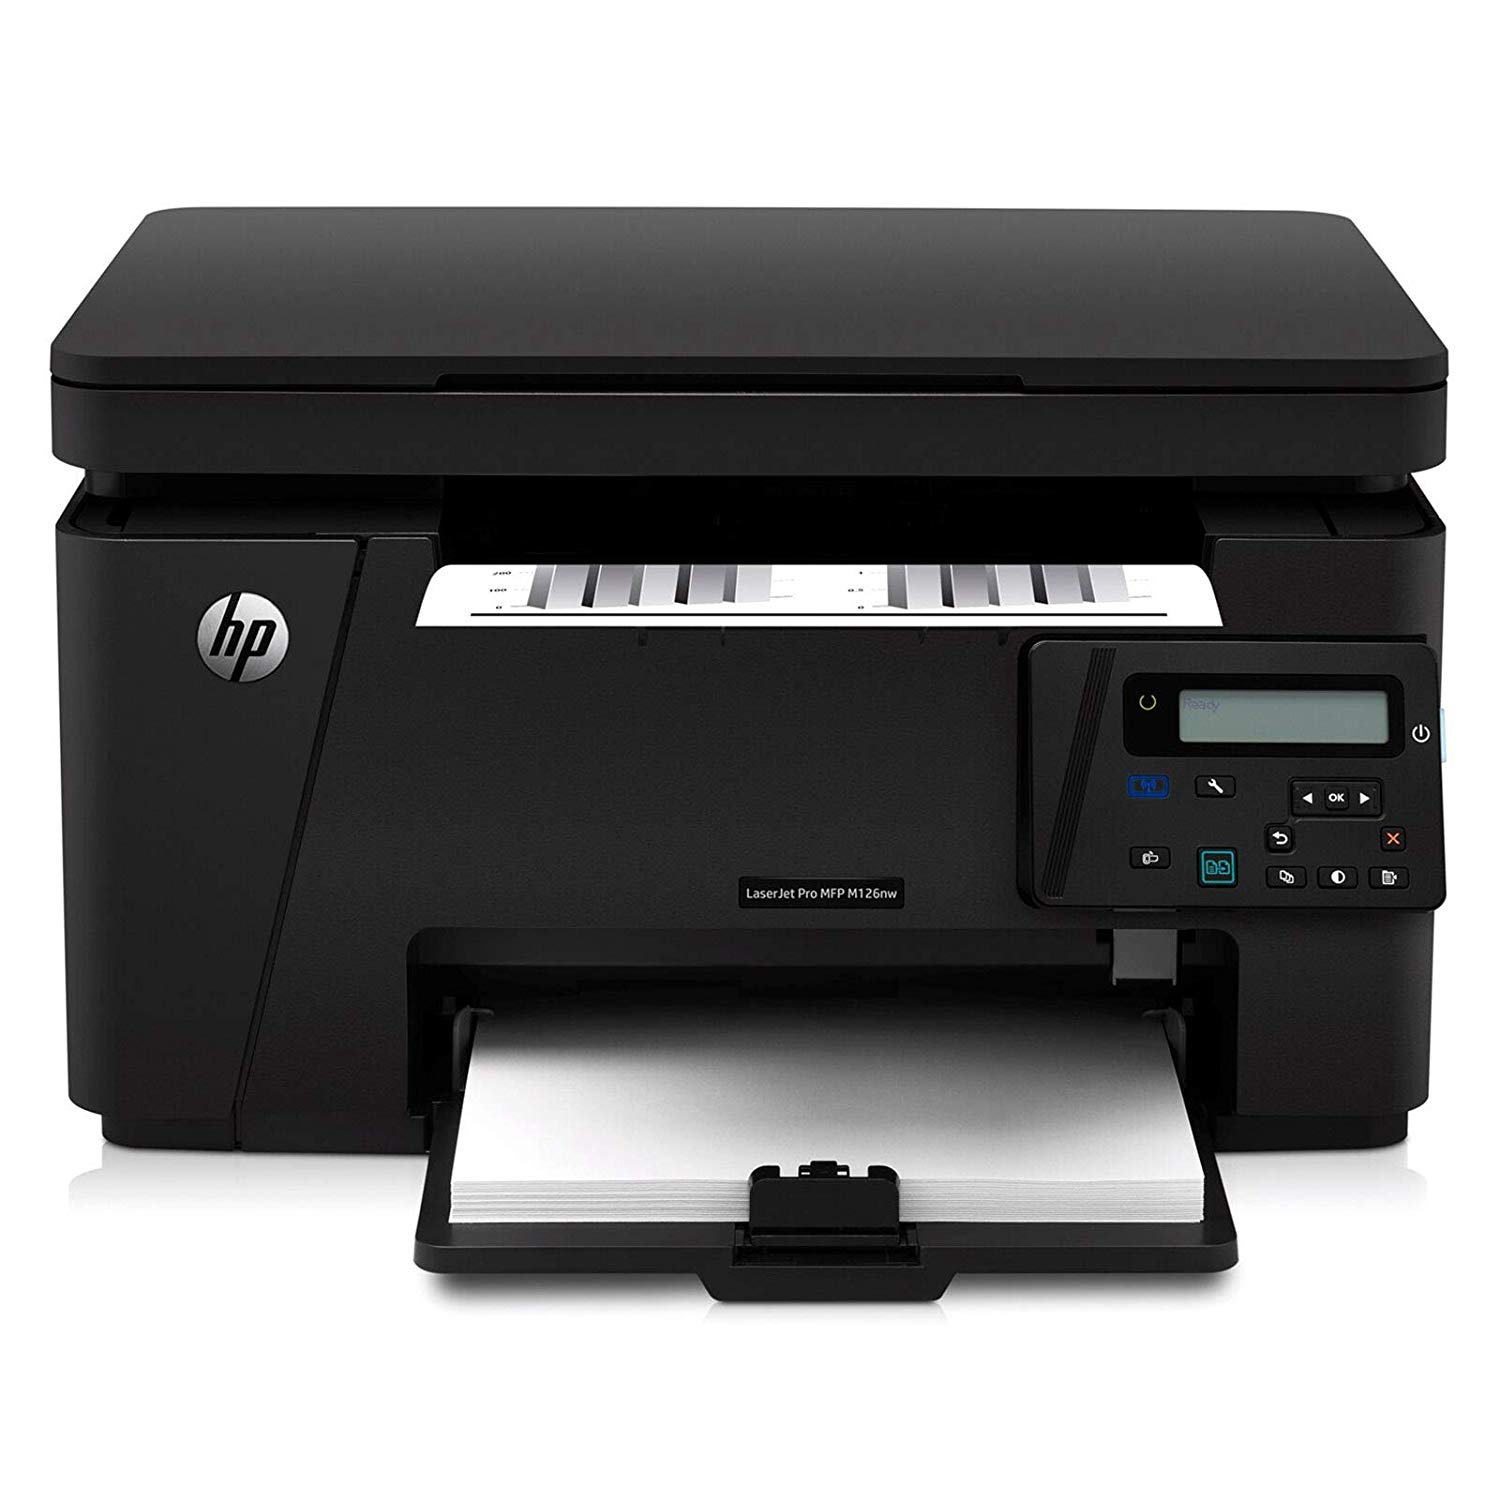 HP LaserJet Pro M126nw Multifunction Monochrome Laser Printer